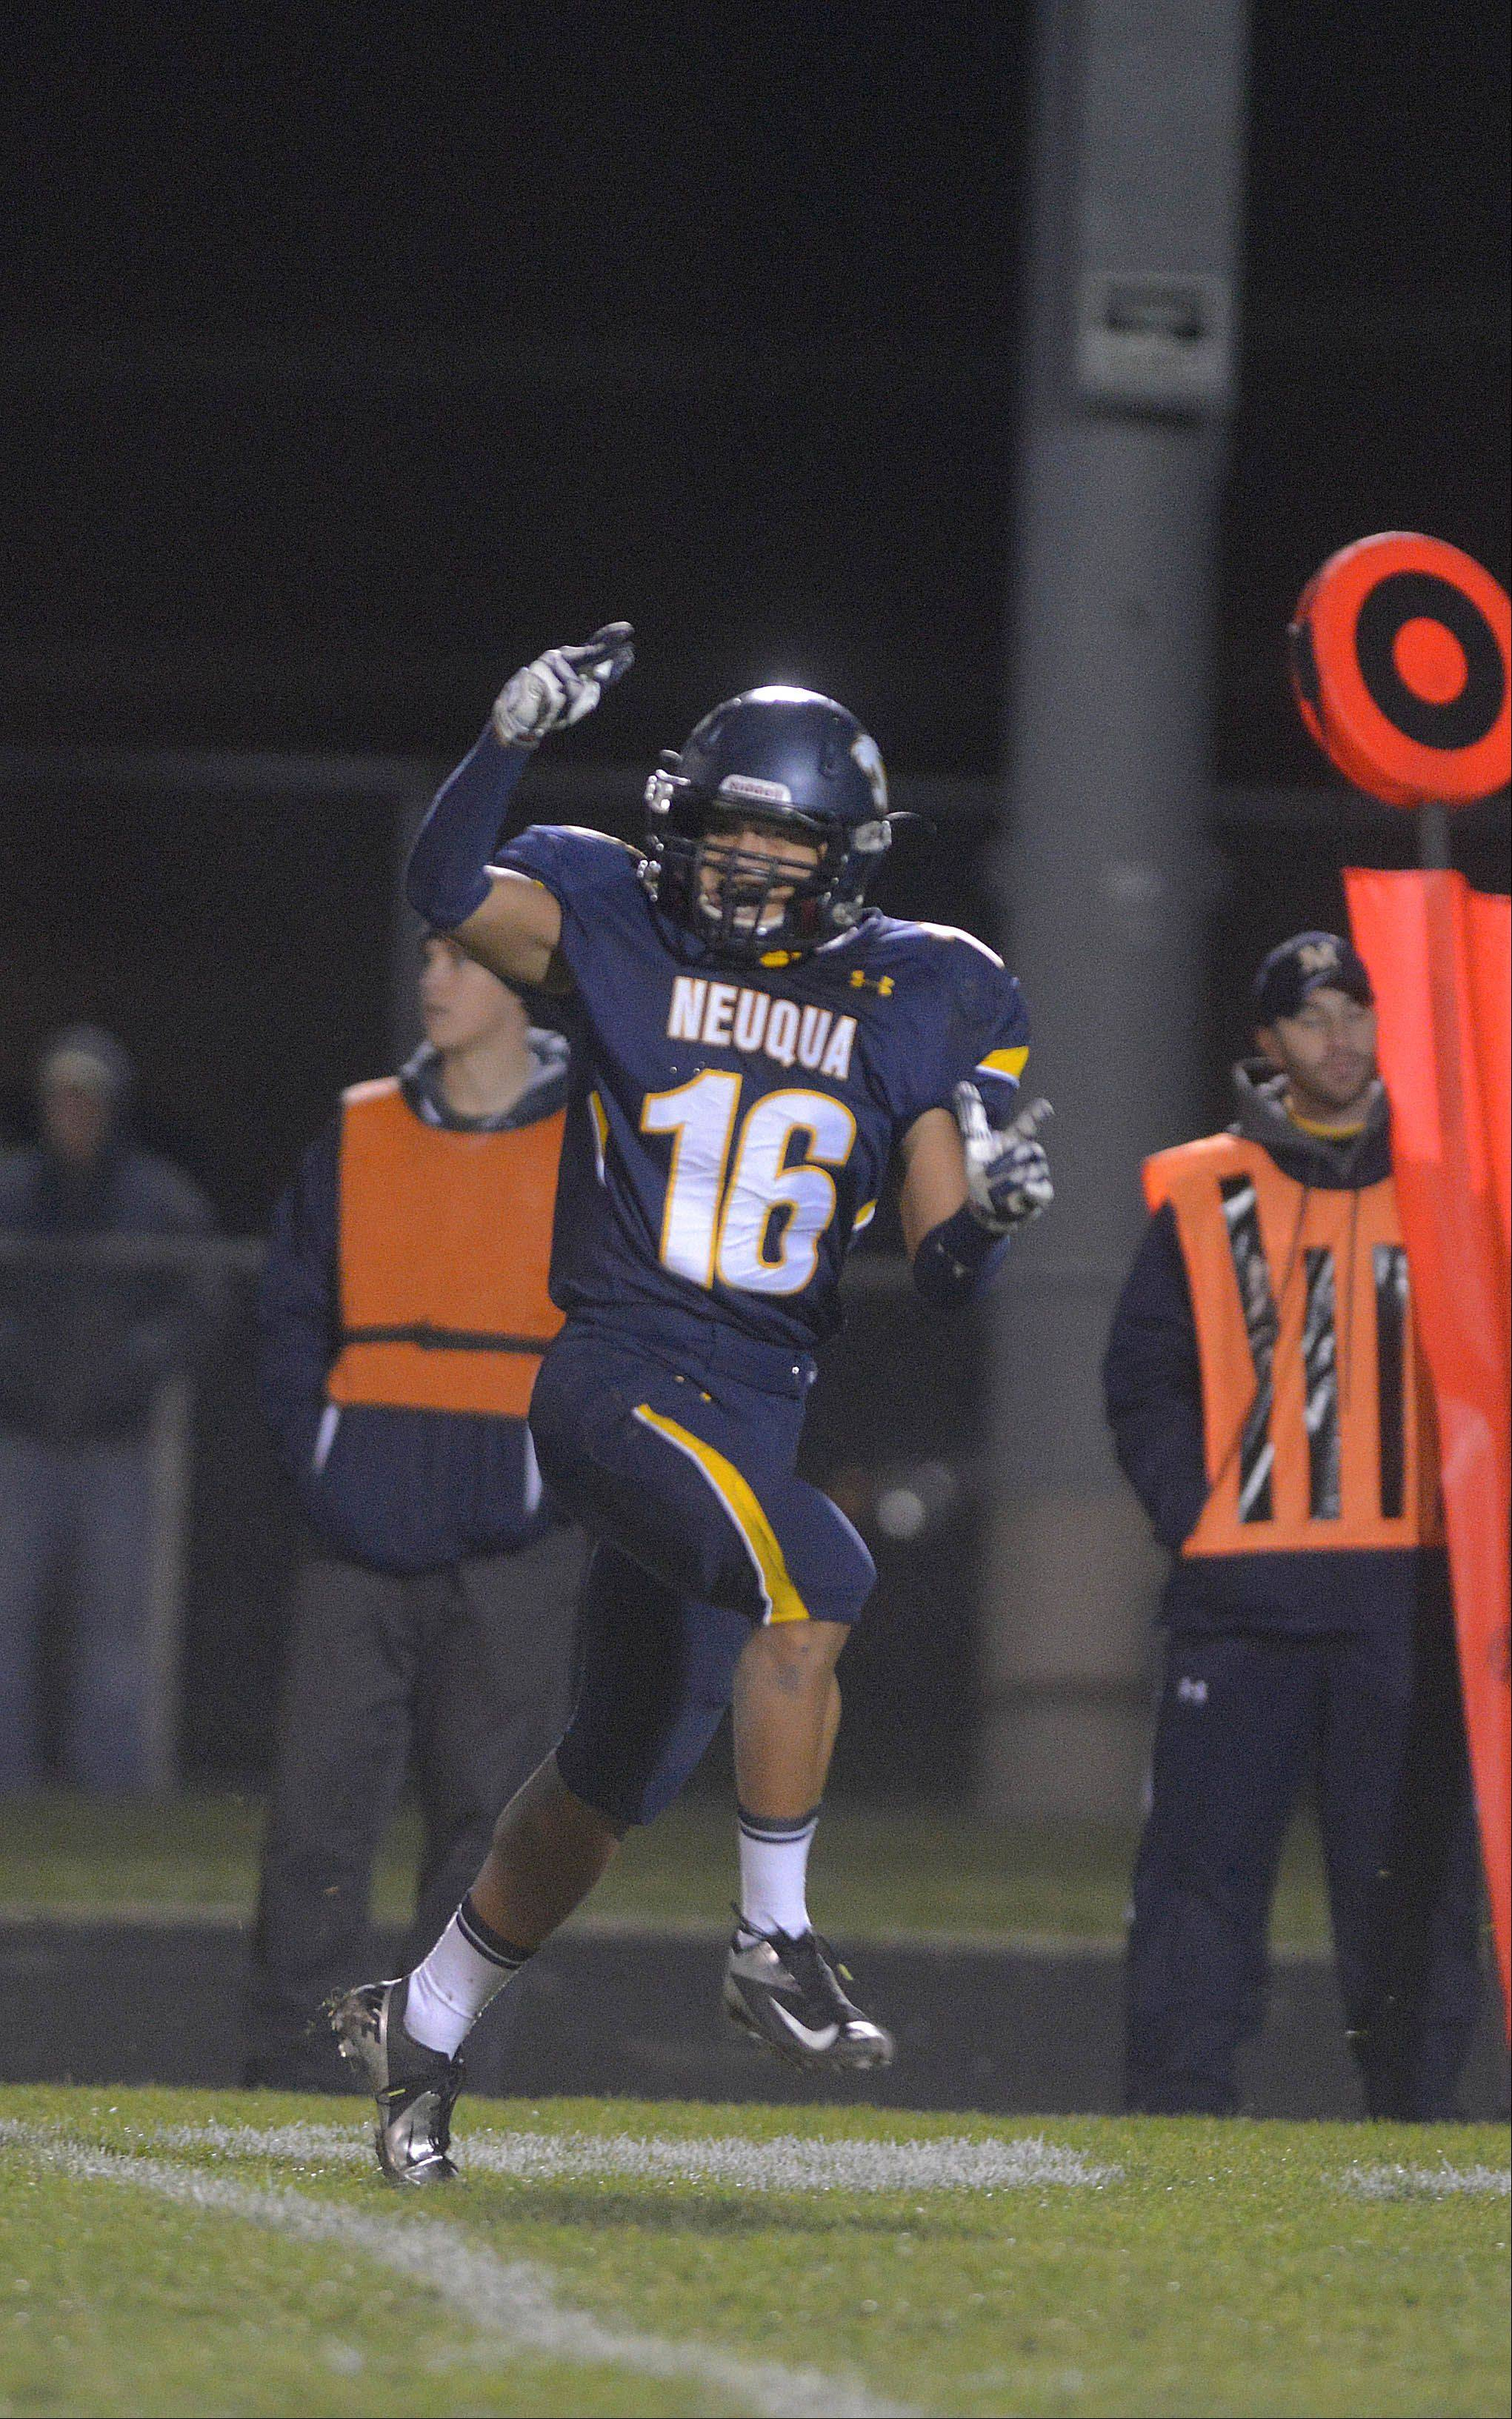 Neuqua Valley's Kyle Boonyong celebrates his team's win over Simeon Saturday in Naperville.